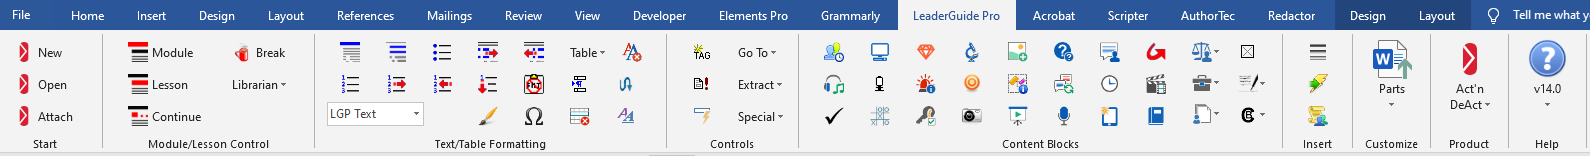 The LeaderGuide Pro v14 Ribbon in Word 2016. Click the the image to see a larger view.